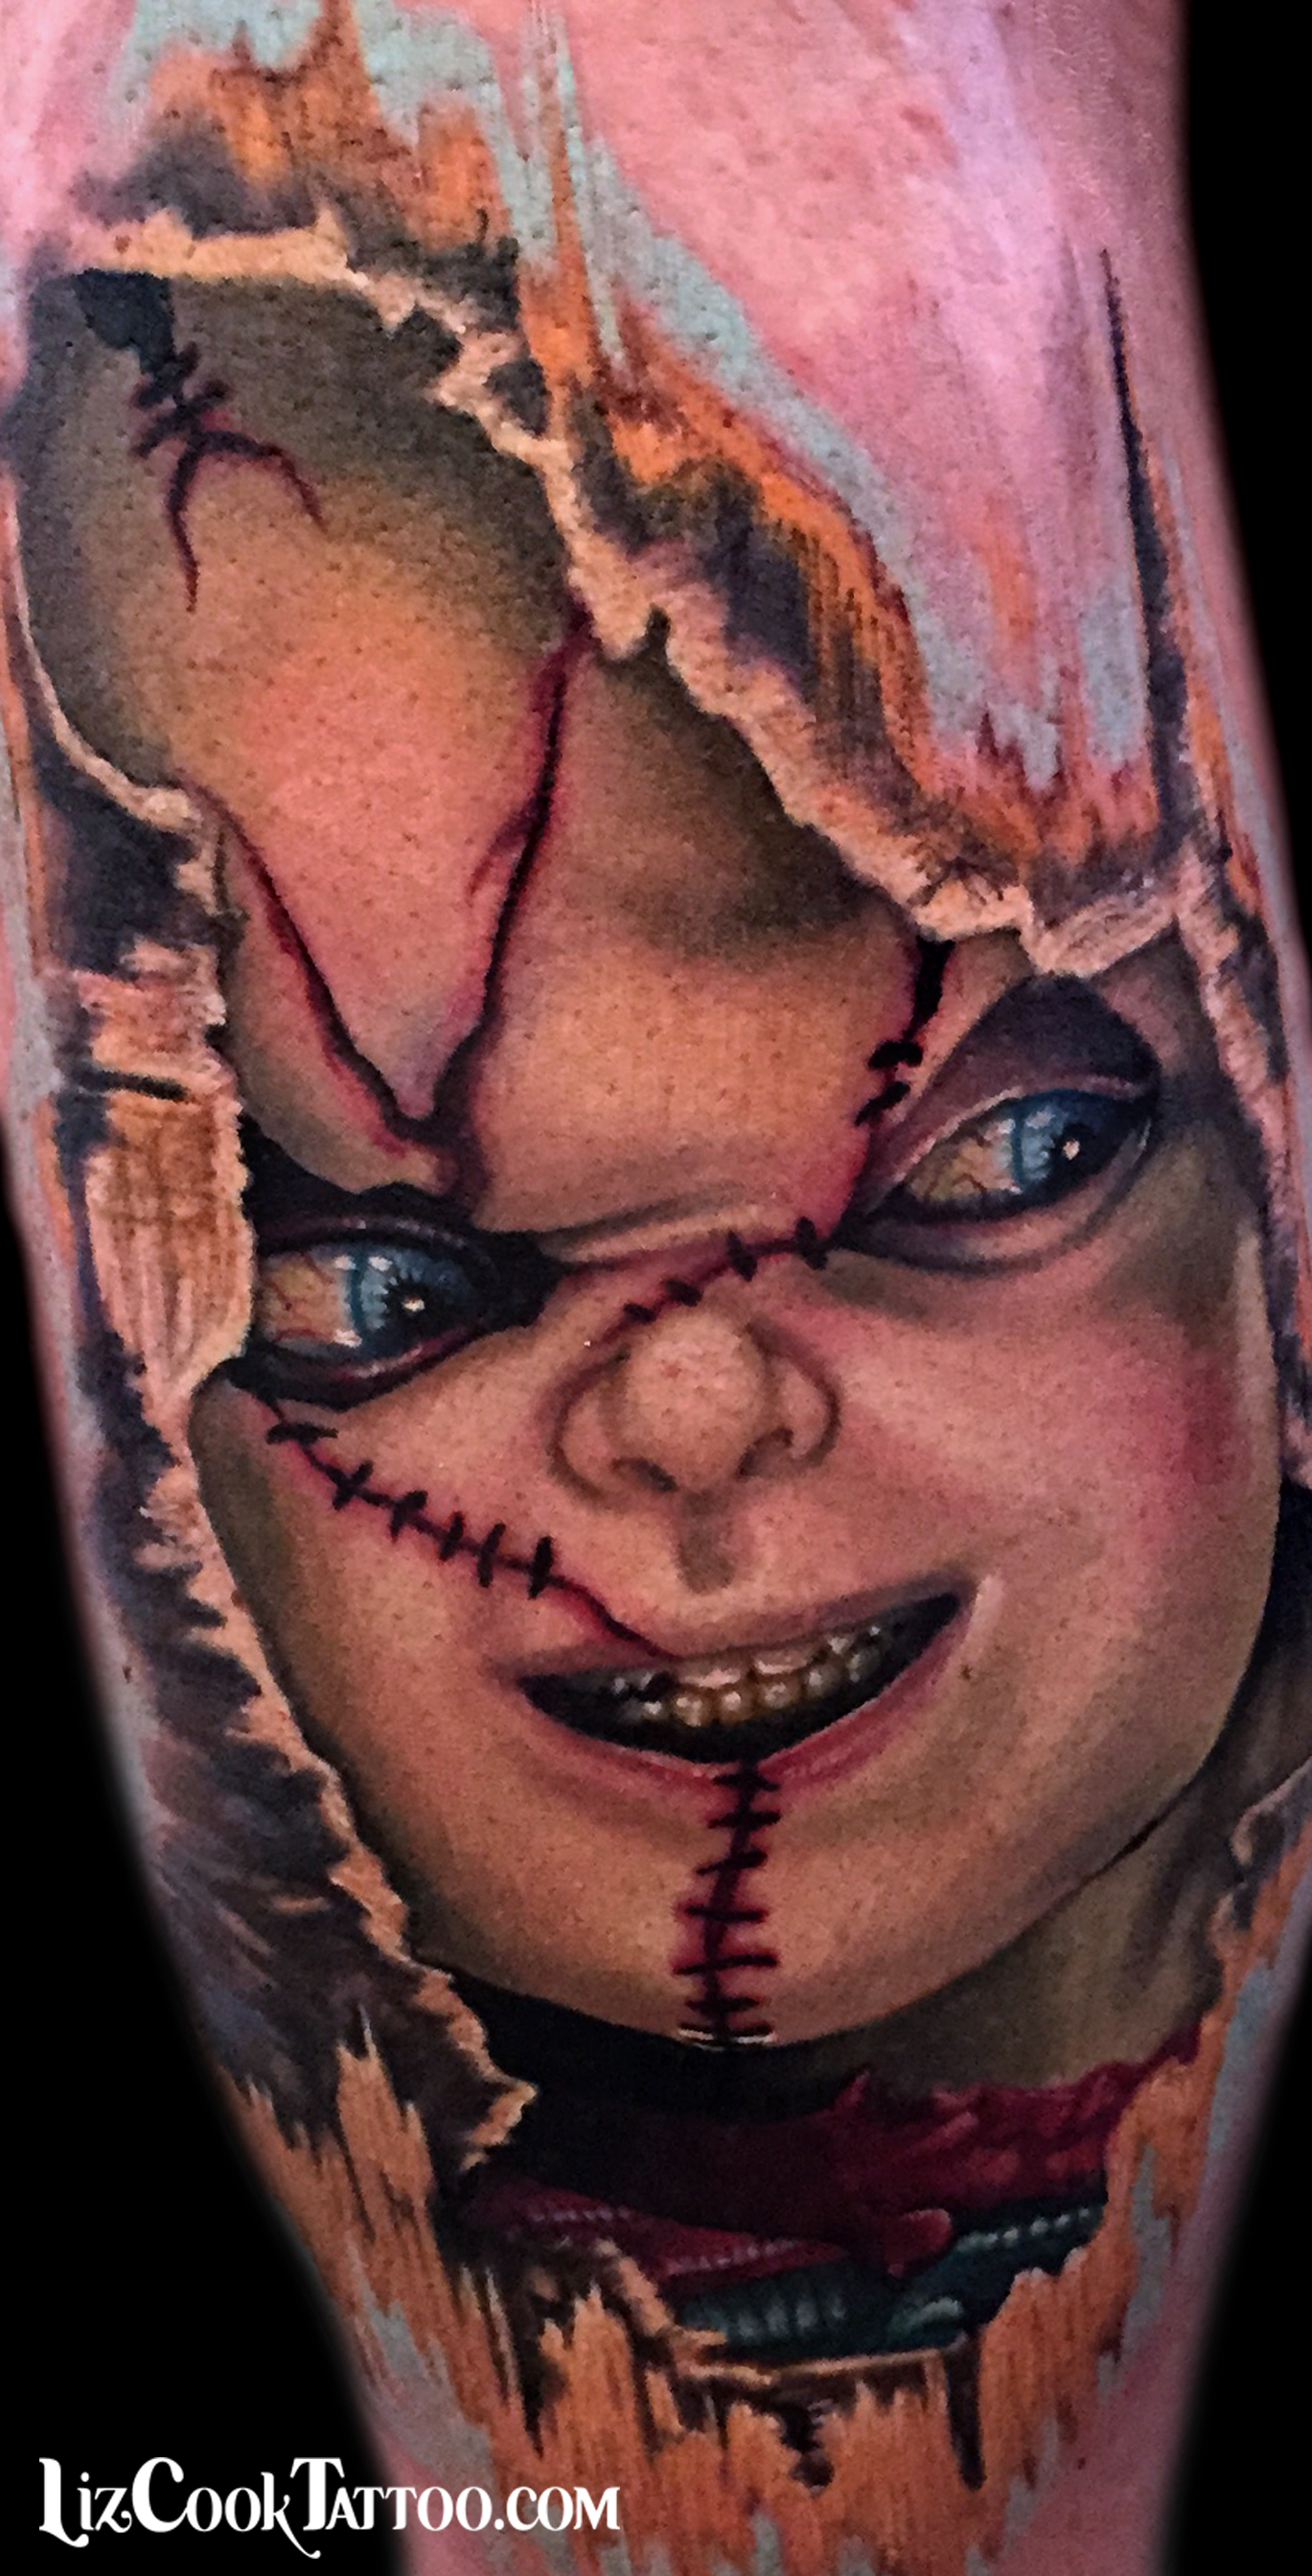 Liz Cook Tattoo Portrait Here's Chucky Color Realism.jpg